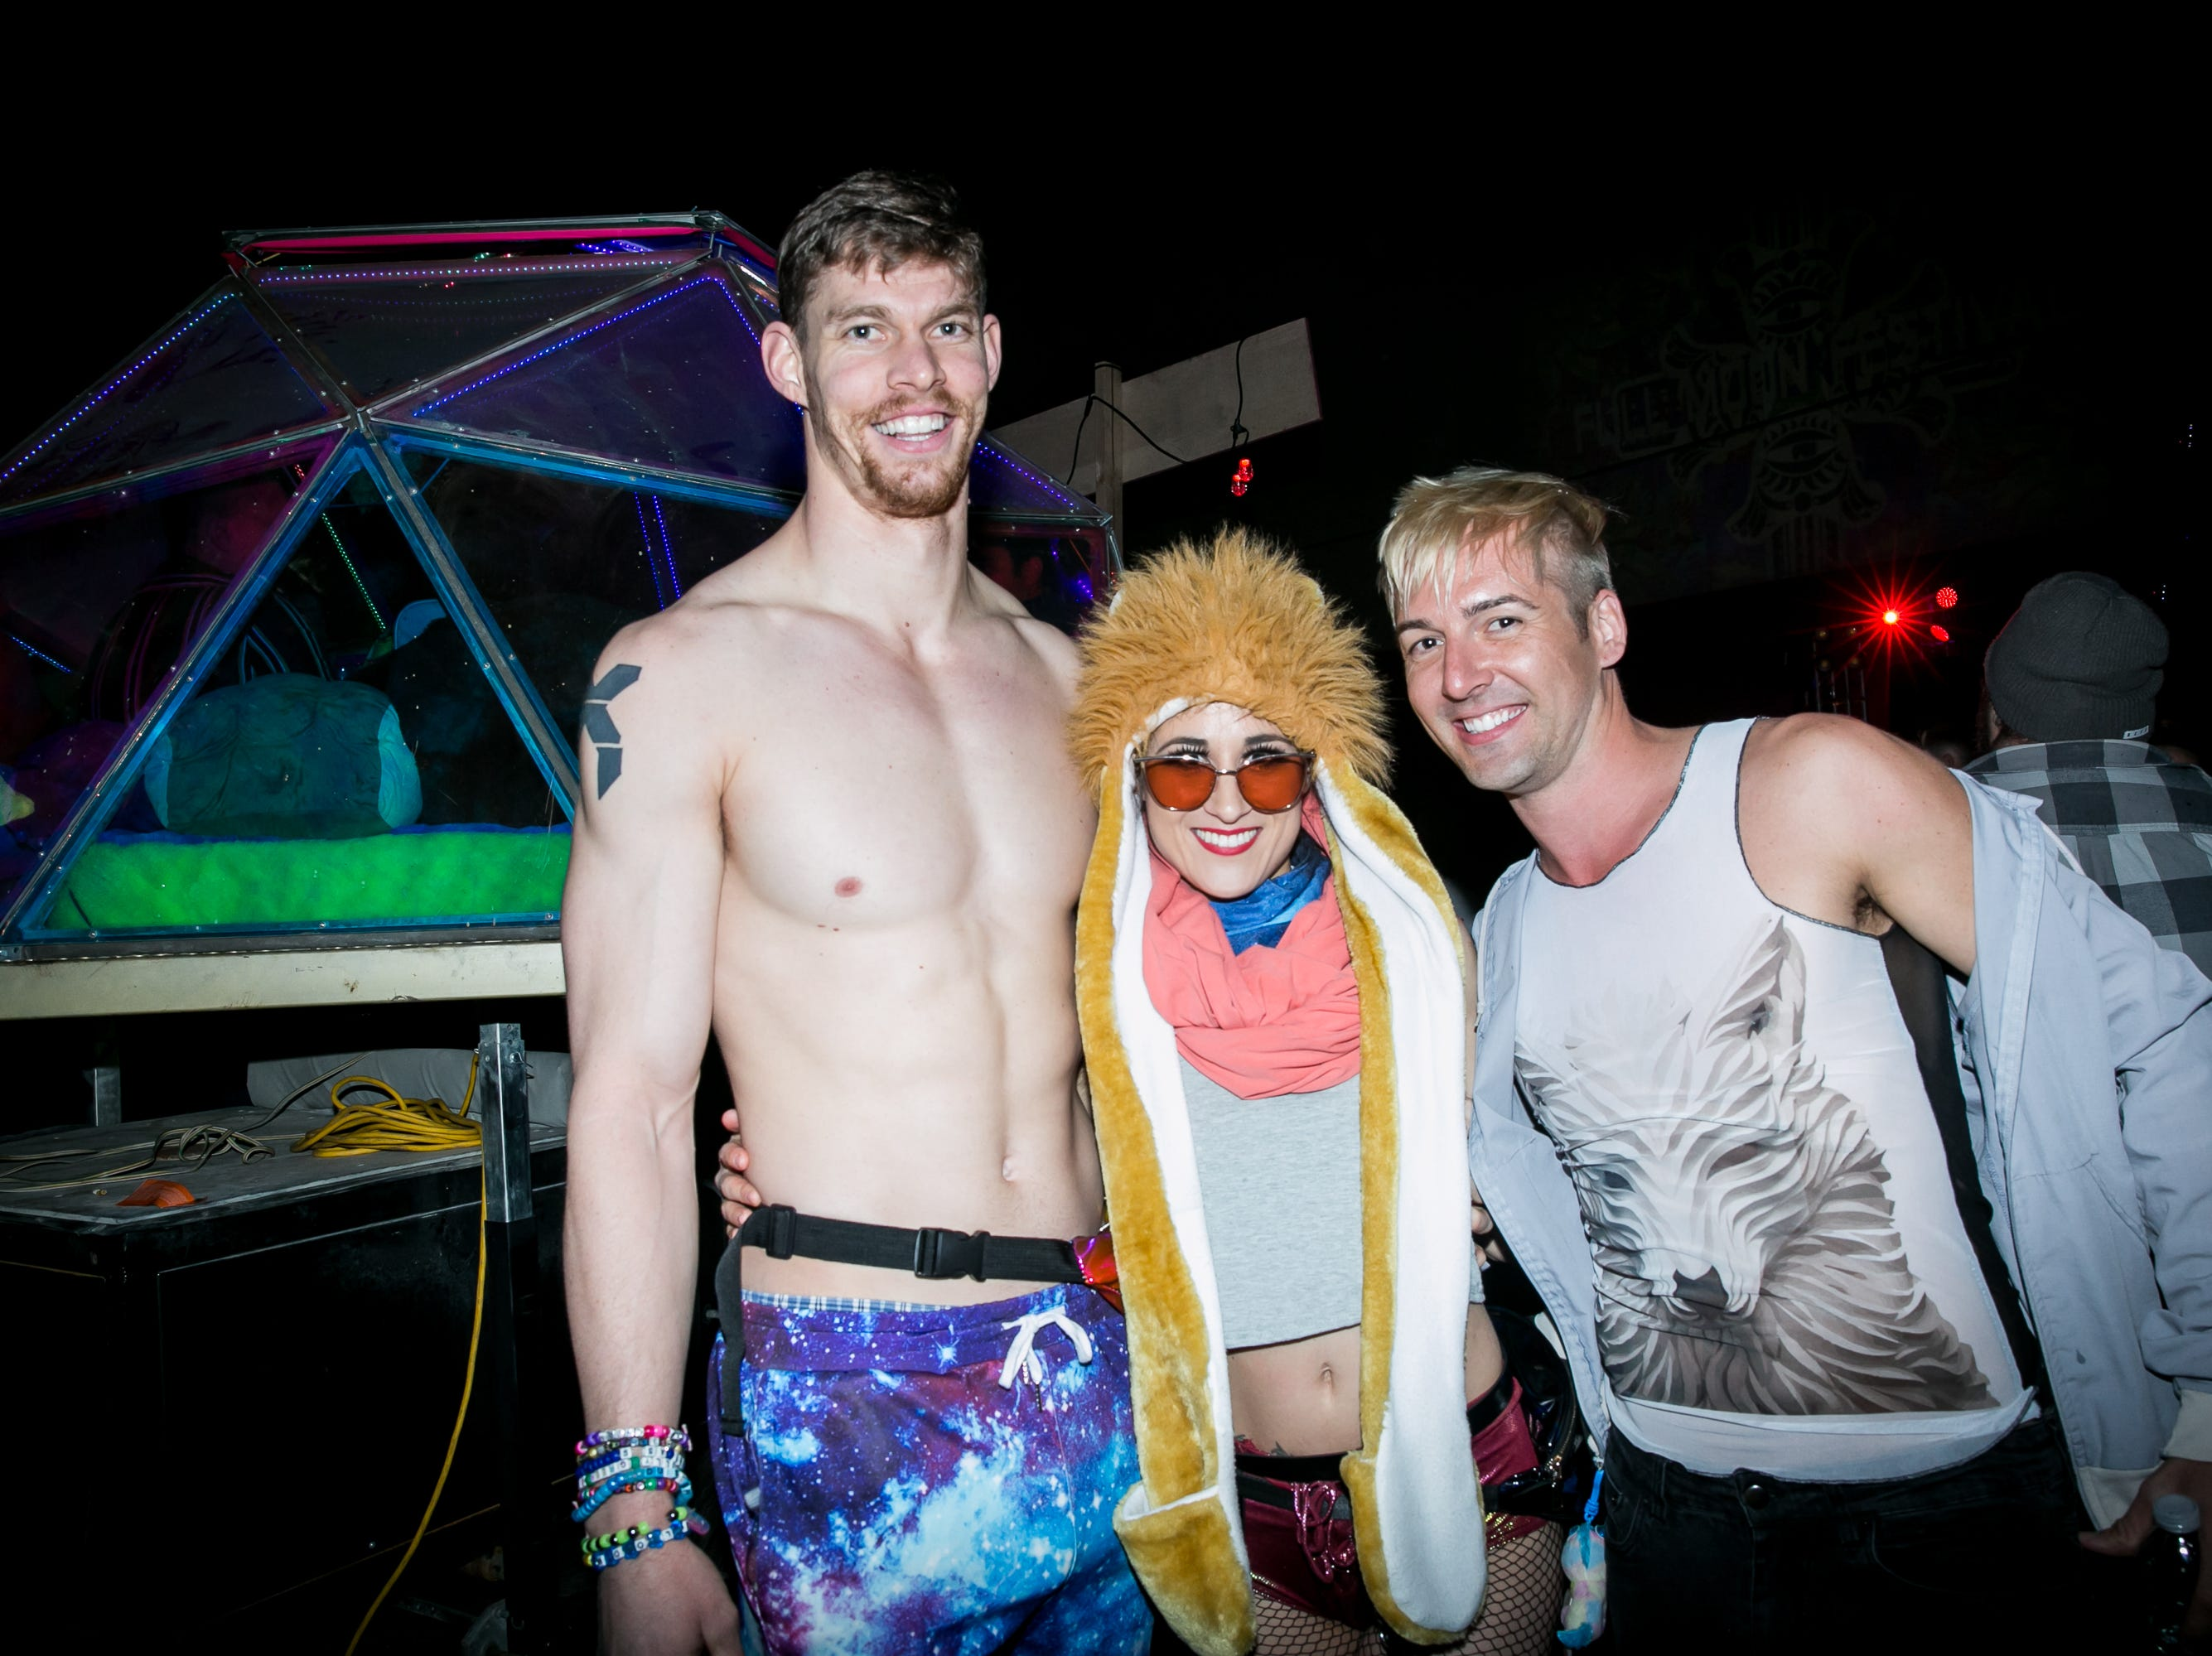 This group had a blast at the Full Moon Festival at the Pressroom on March 23, 2019.